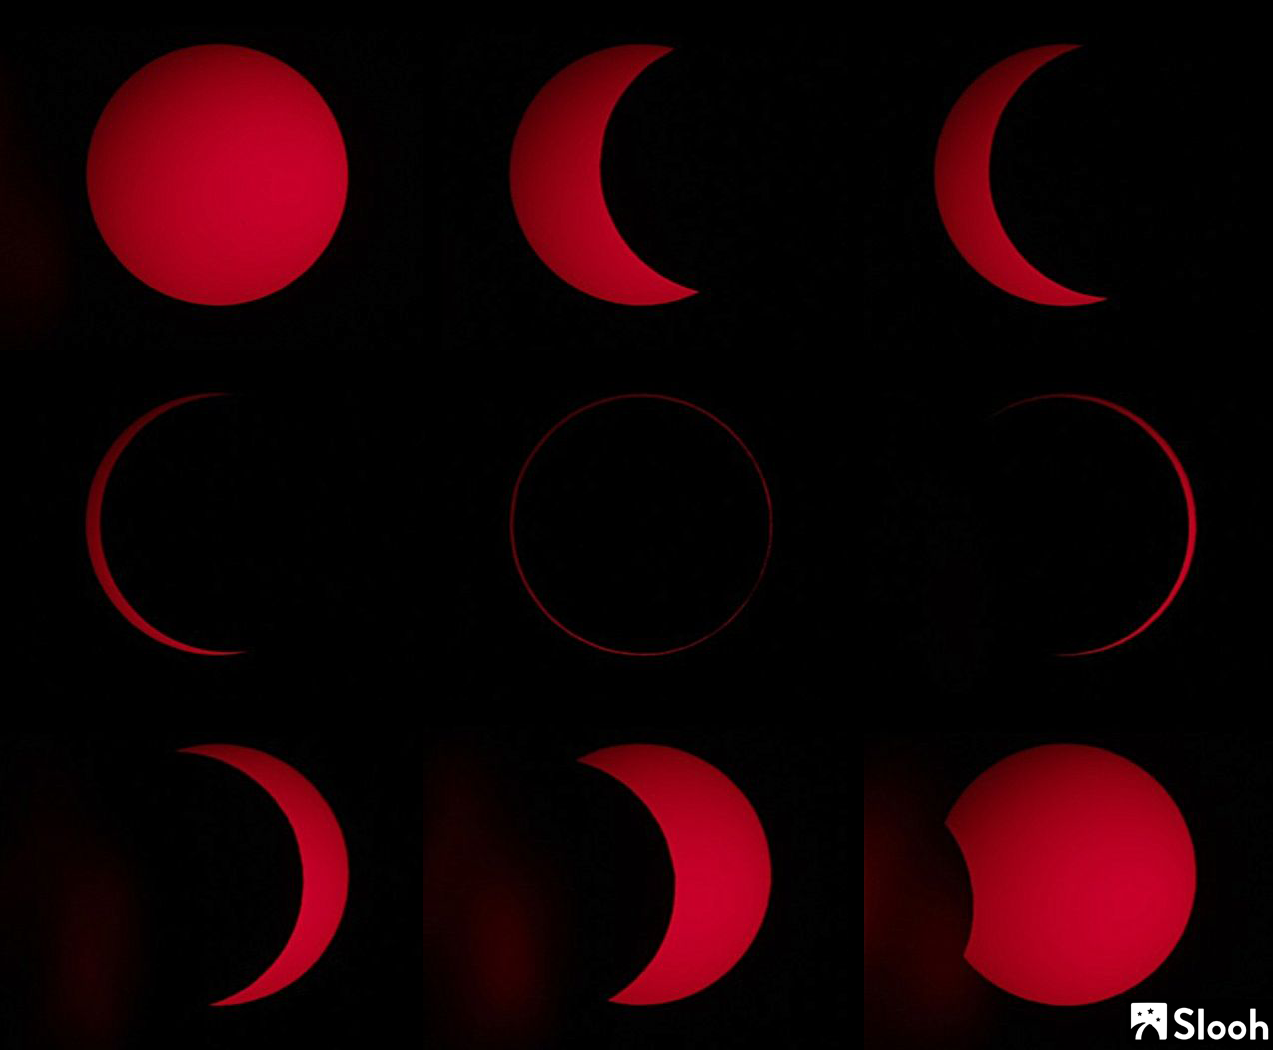 Moon Blocks (Most of) the Sun in 'Ring of Fire' Solar Eclipse